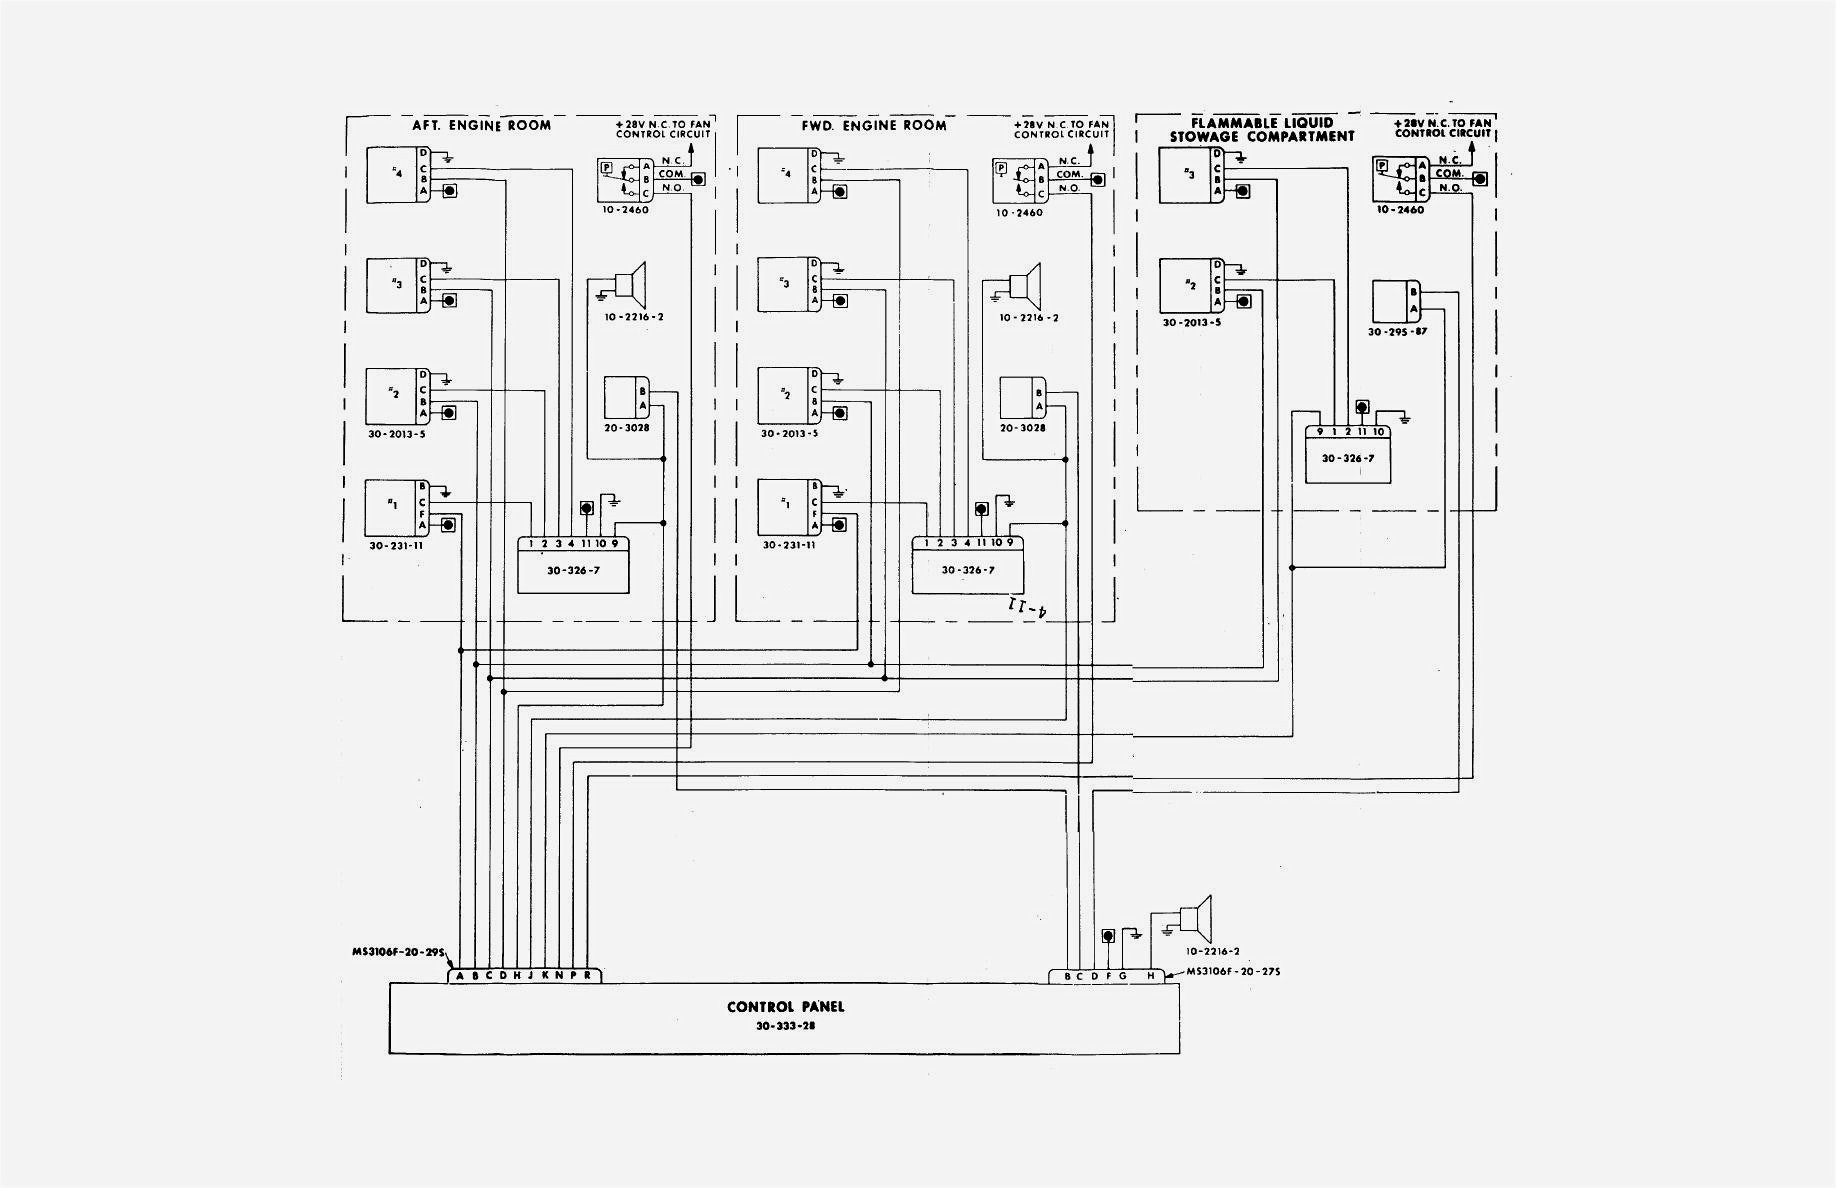 class b fire alarm wiring diagram Download-Wiring Diagram Smoke Alarms New Fire Alarm Wiring Diagram Pdf Health Shop 1-k